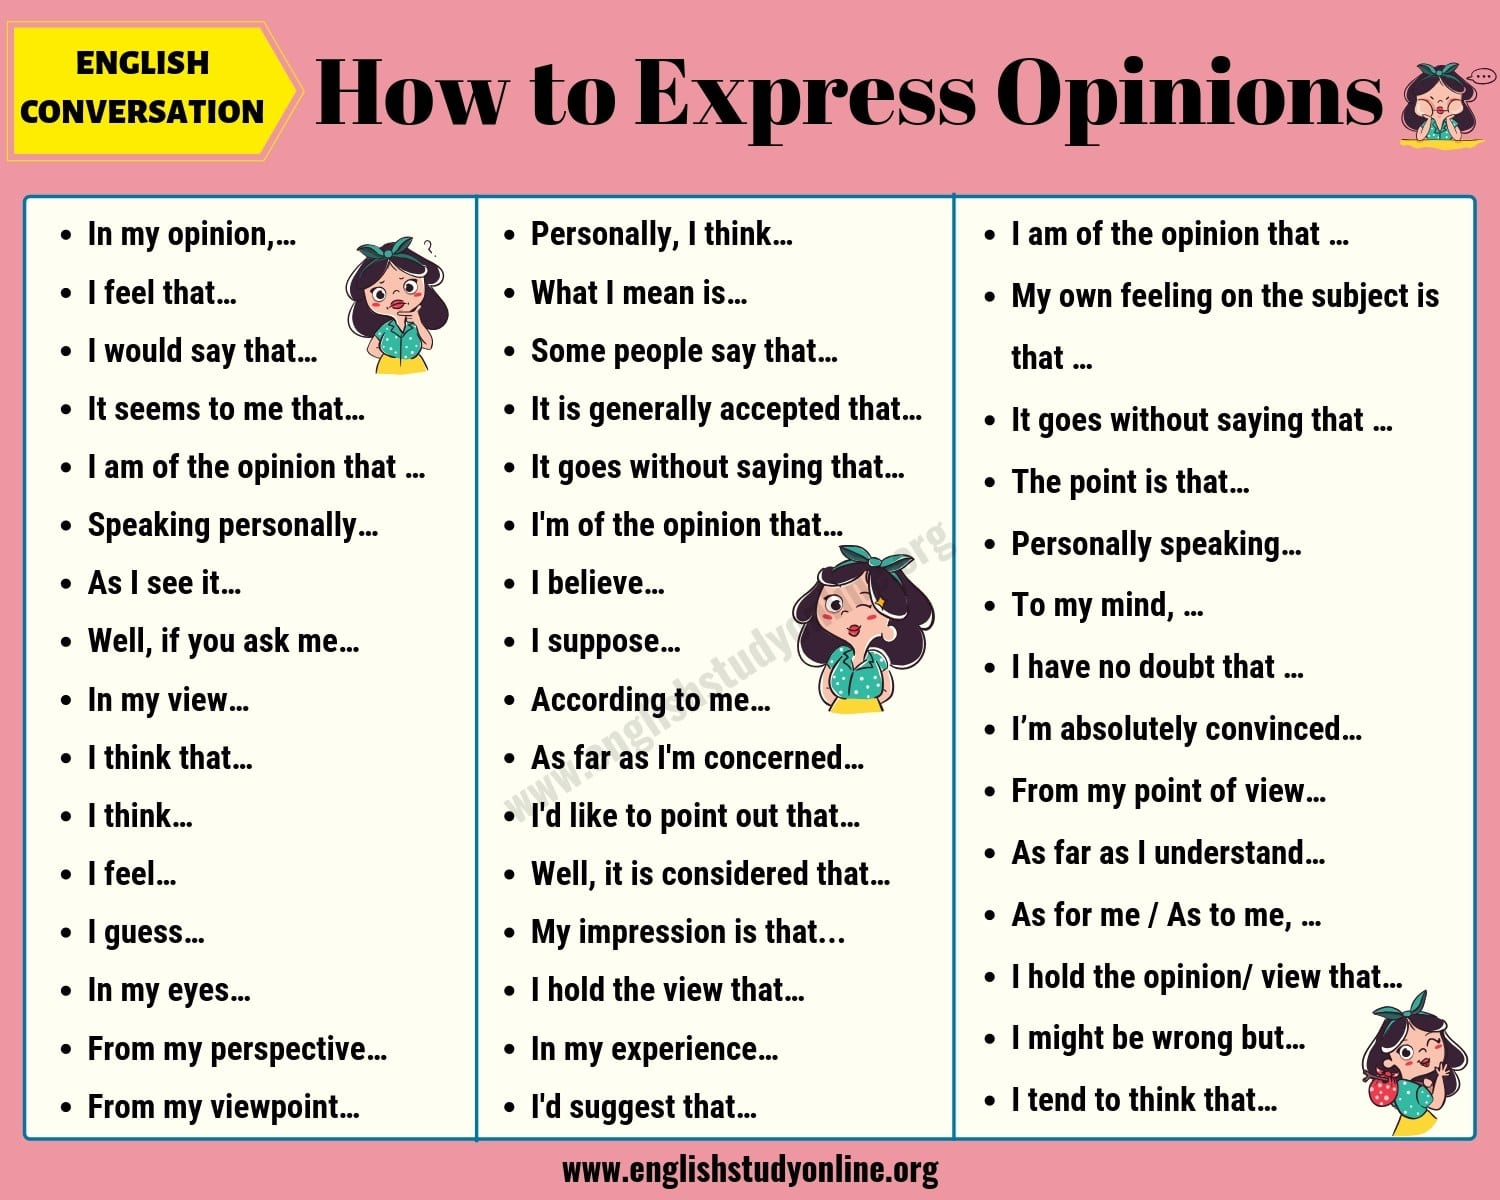 How to Express Opinions